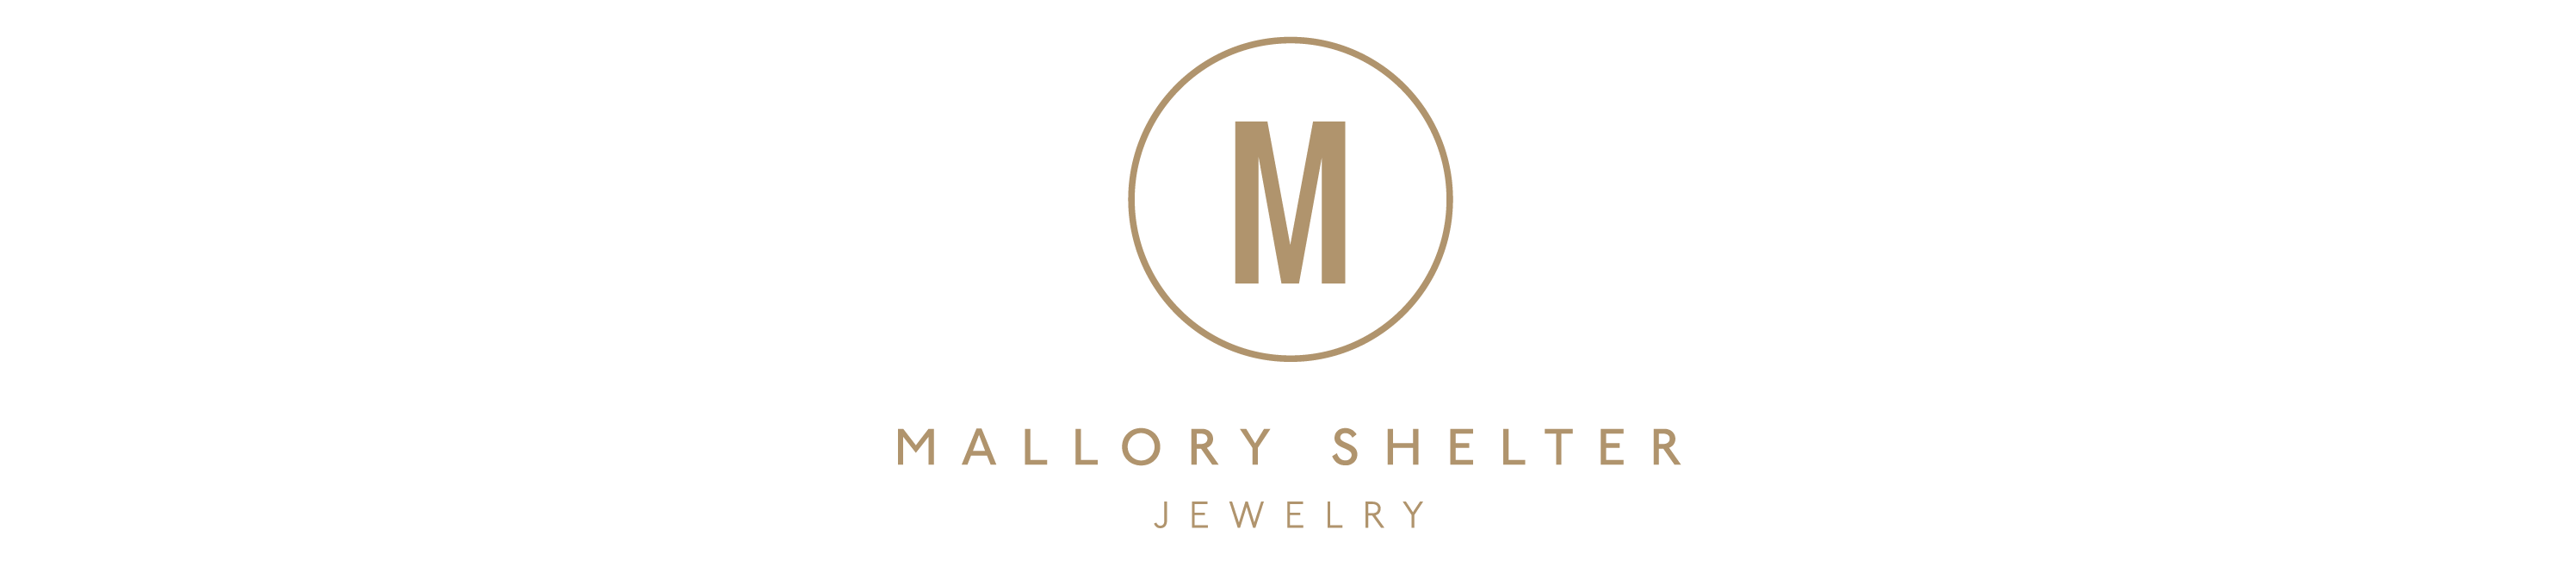 Mallory Shelter Jewelry